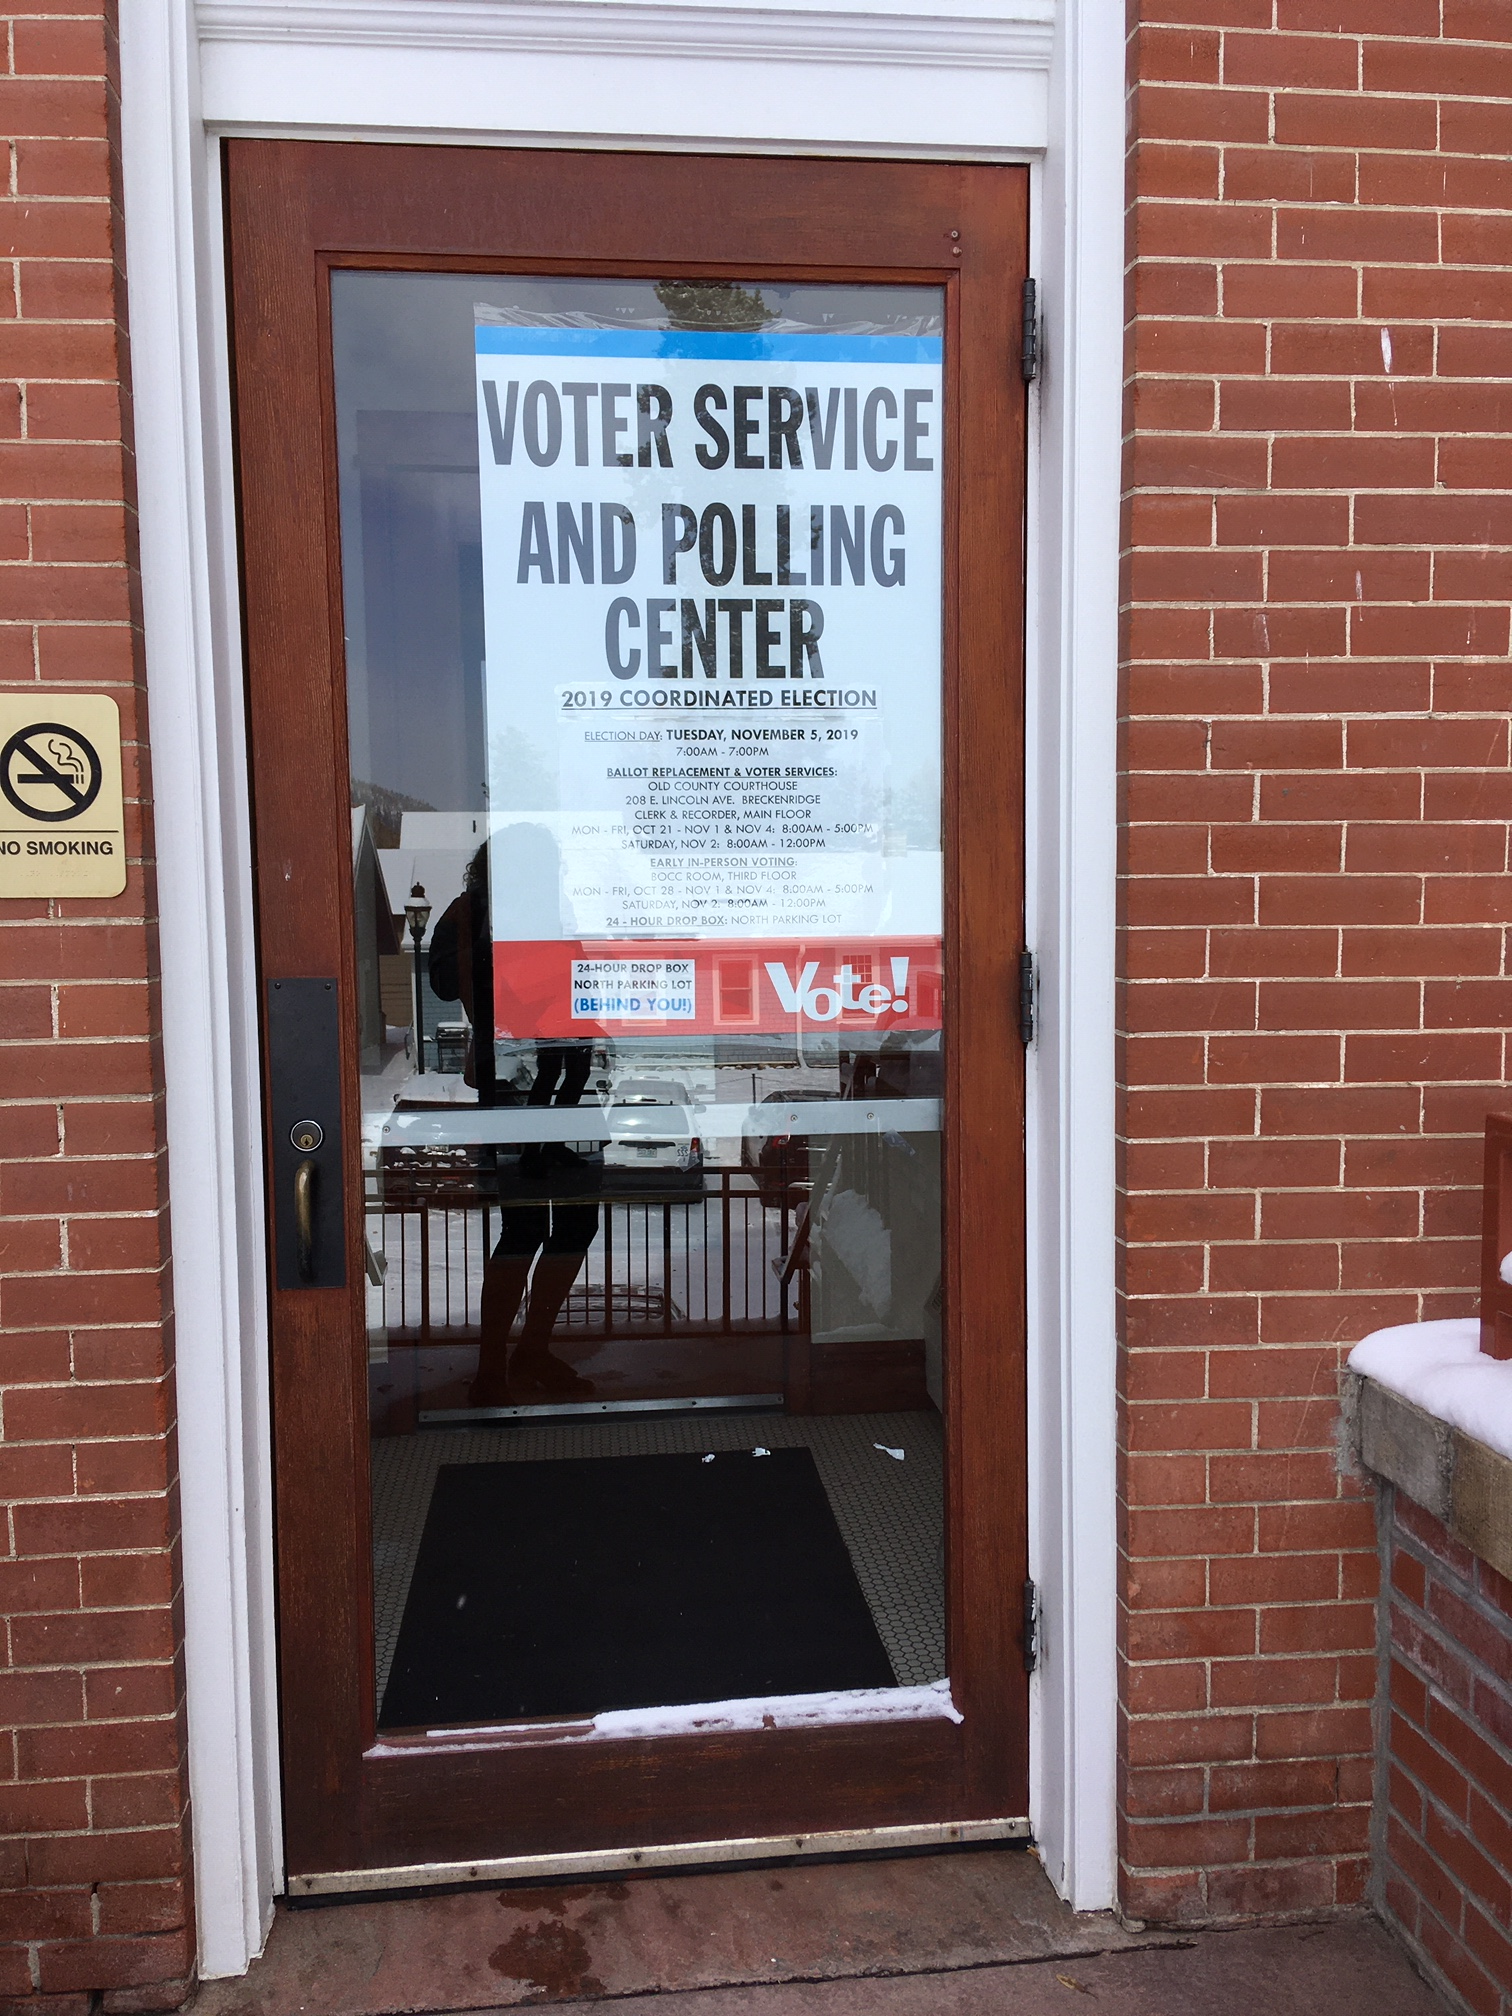 A sign on the County Courthouse door indicates the building is a polling center.